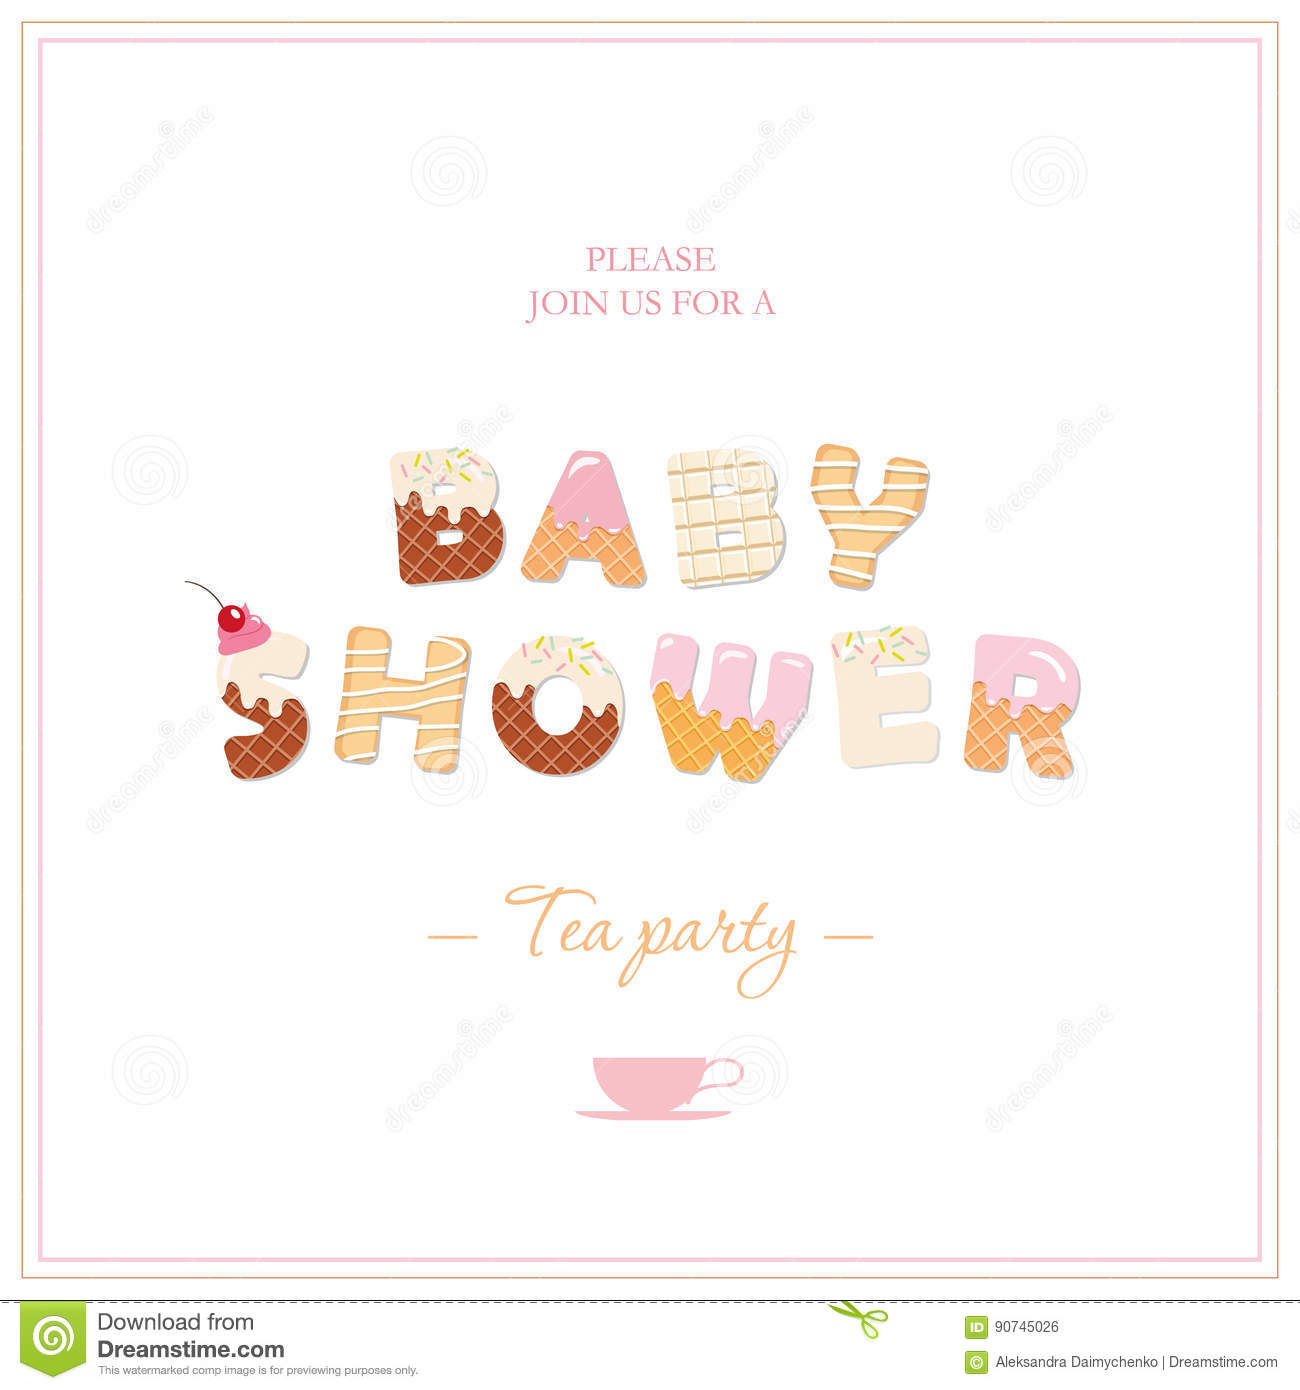 baby shower tea party invitation design sweet decorative letters in pastel pink and beige